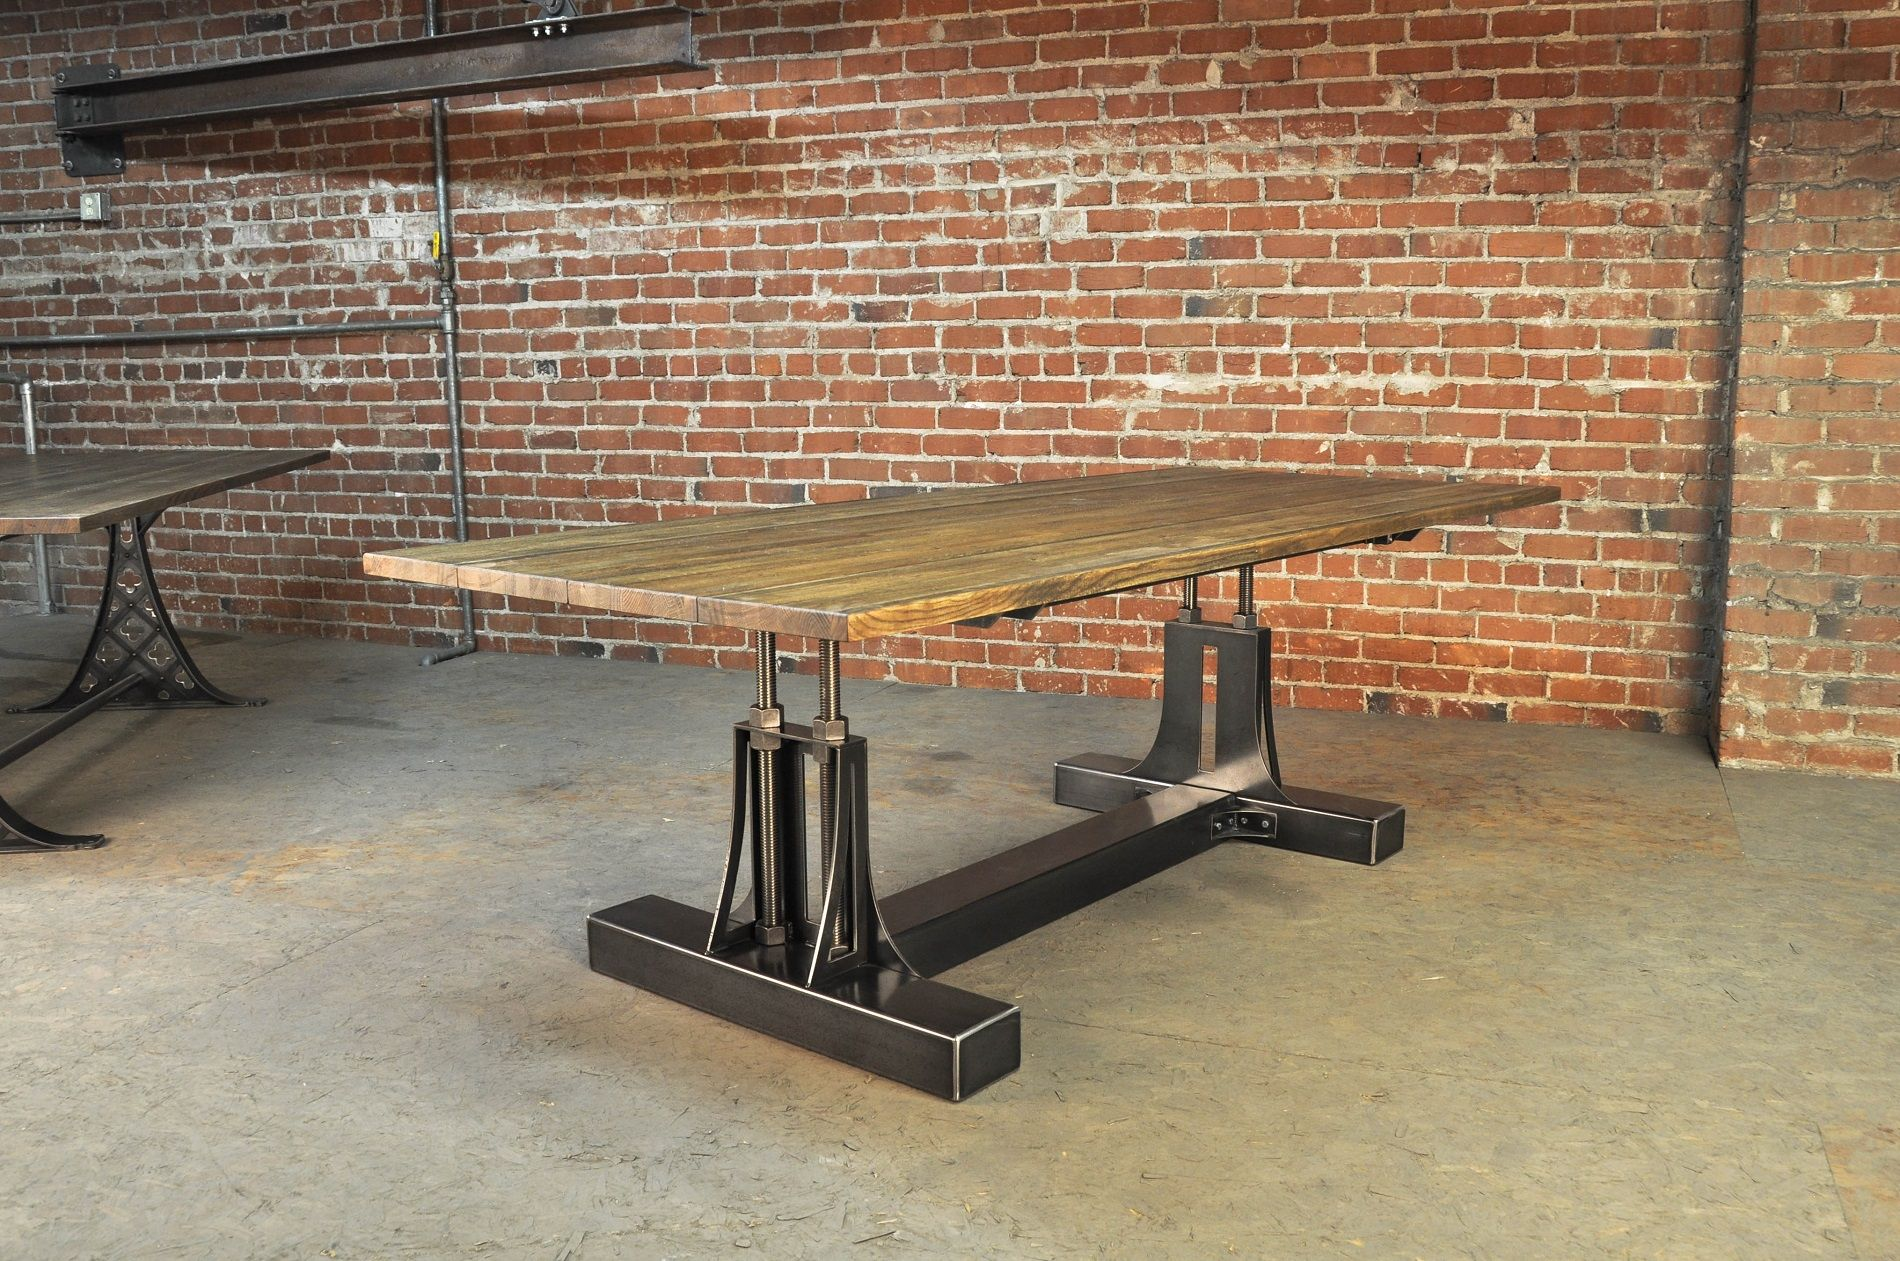 Factory caster vintage industrial furniture - Post Industrial Conference Table